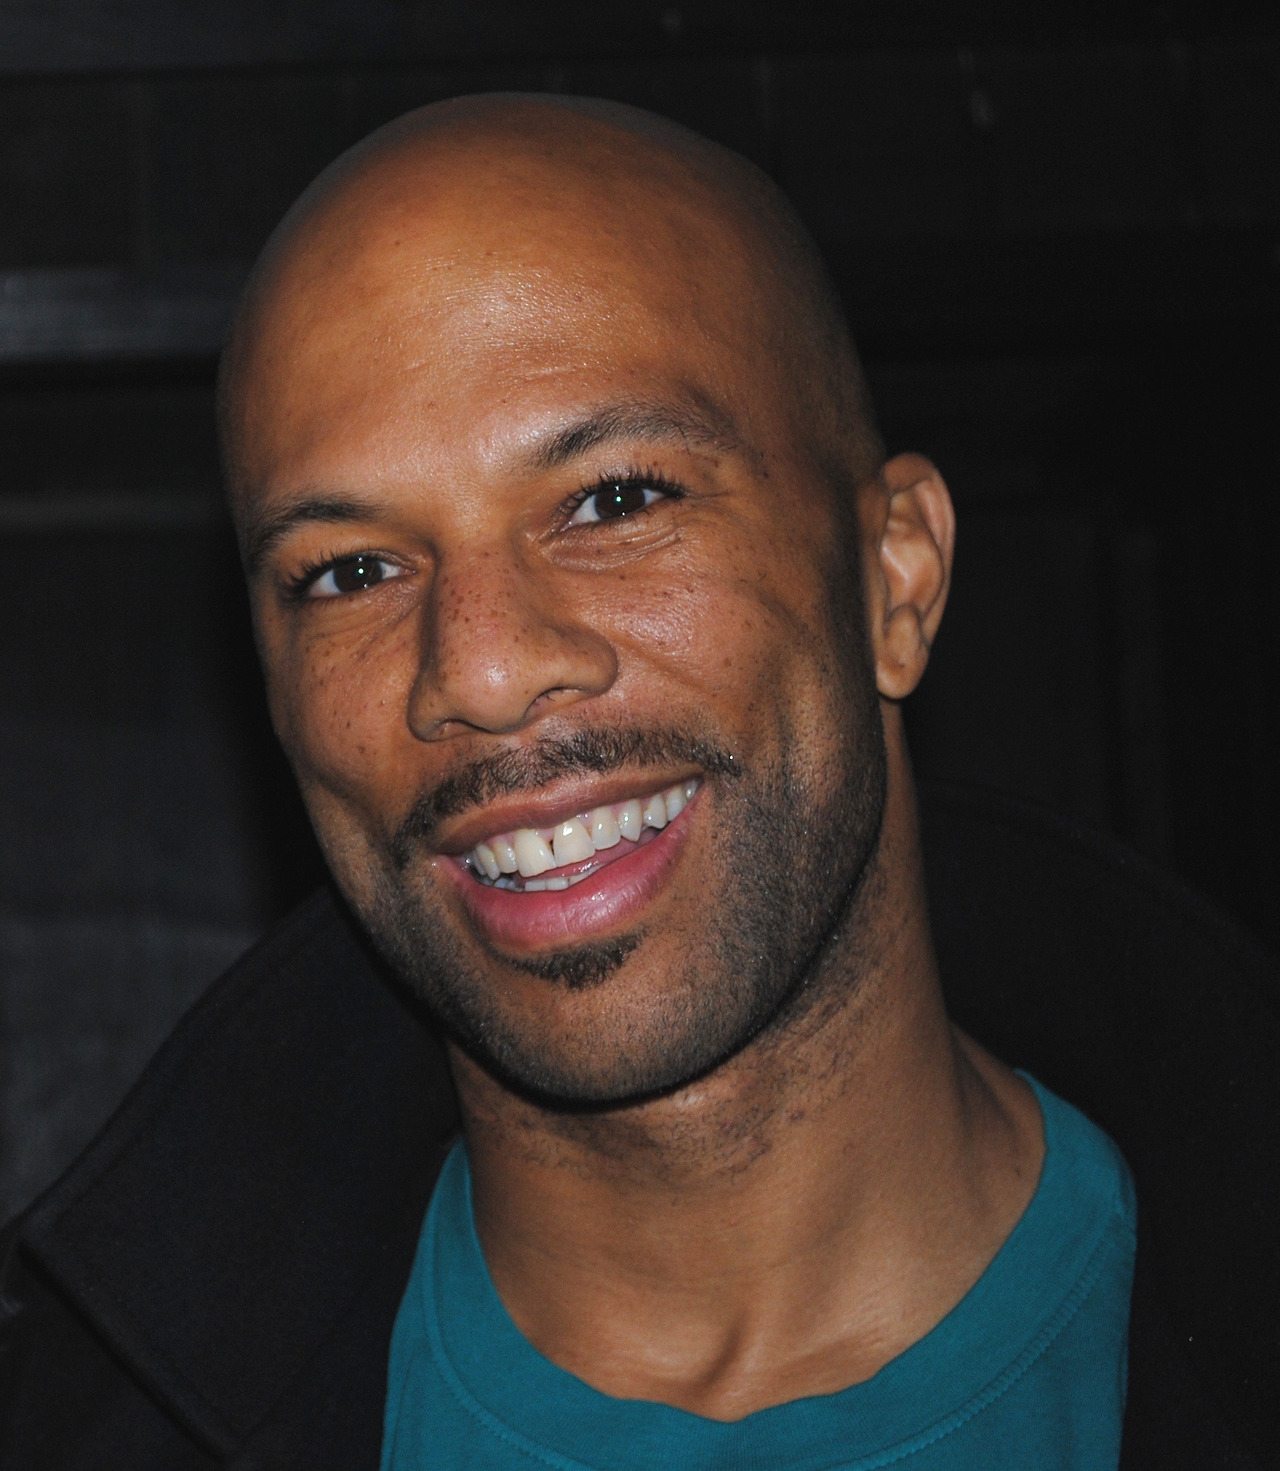 """xurbanmusicmagazine: Photo by Anthony Alden Can Rappers help reduce violence? Grammy-award winning hip-hop artist Common, who has openly worried about the violence in Chicago, was in his hometown Friday to help celebrate the city's music scene when he was confronted with a brutal reminder of what he's been talking a story about a hail of gunfire that wounded 13 people. """"It makes me think I got to do more; we got to do more,"""" he said in an interview with The Associated Press after giving a speech as the keynote speaker at the Chicago Music Summit, a conference to help local musicians and music professionals with their careers.Police say Thursday night's shooting appears to be gang related. Read more at:http://whoshotyouanthonyalden.blogspot.com/2013/09/can-rappers-can-help-reduce-violence.html"""